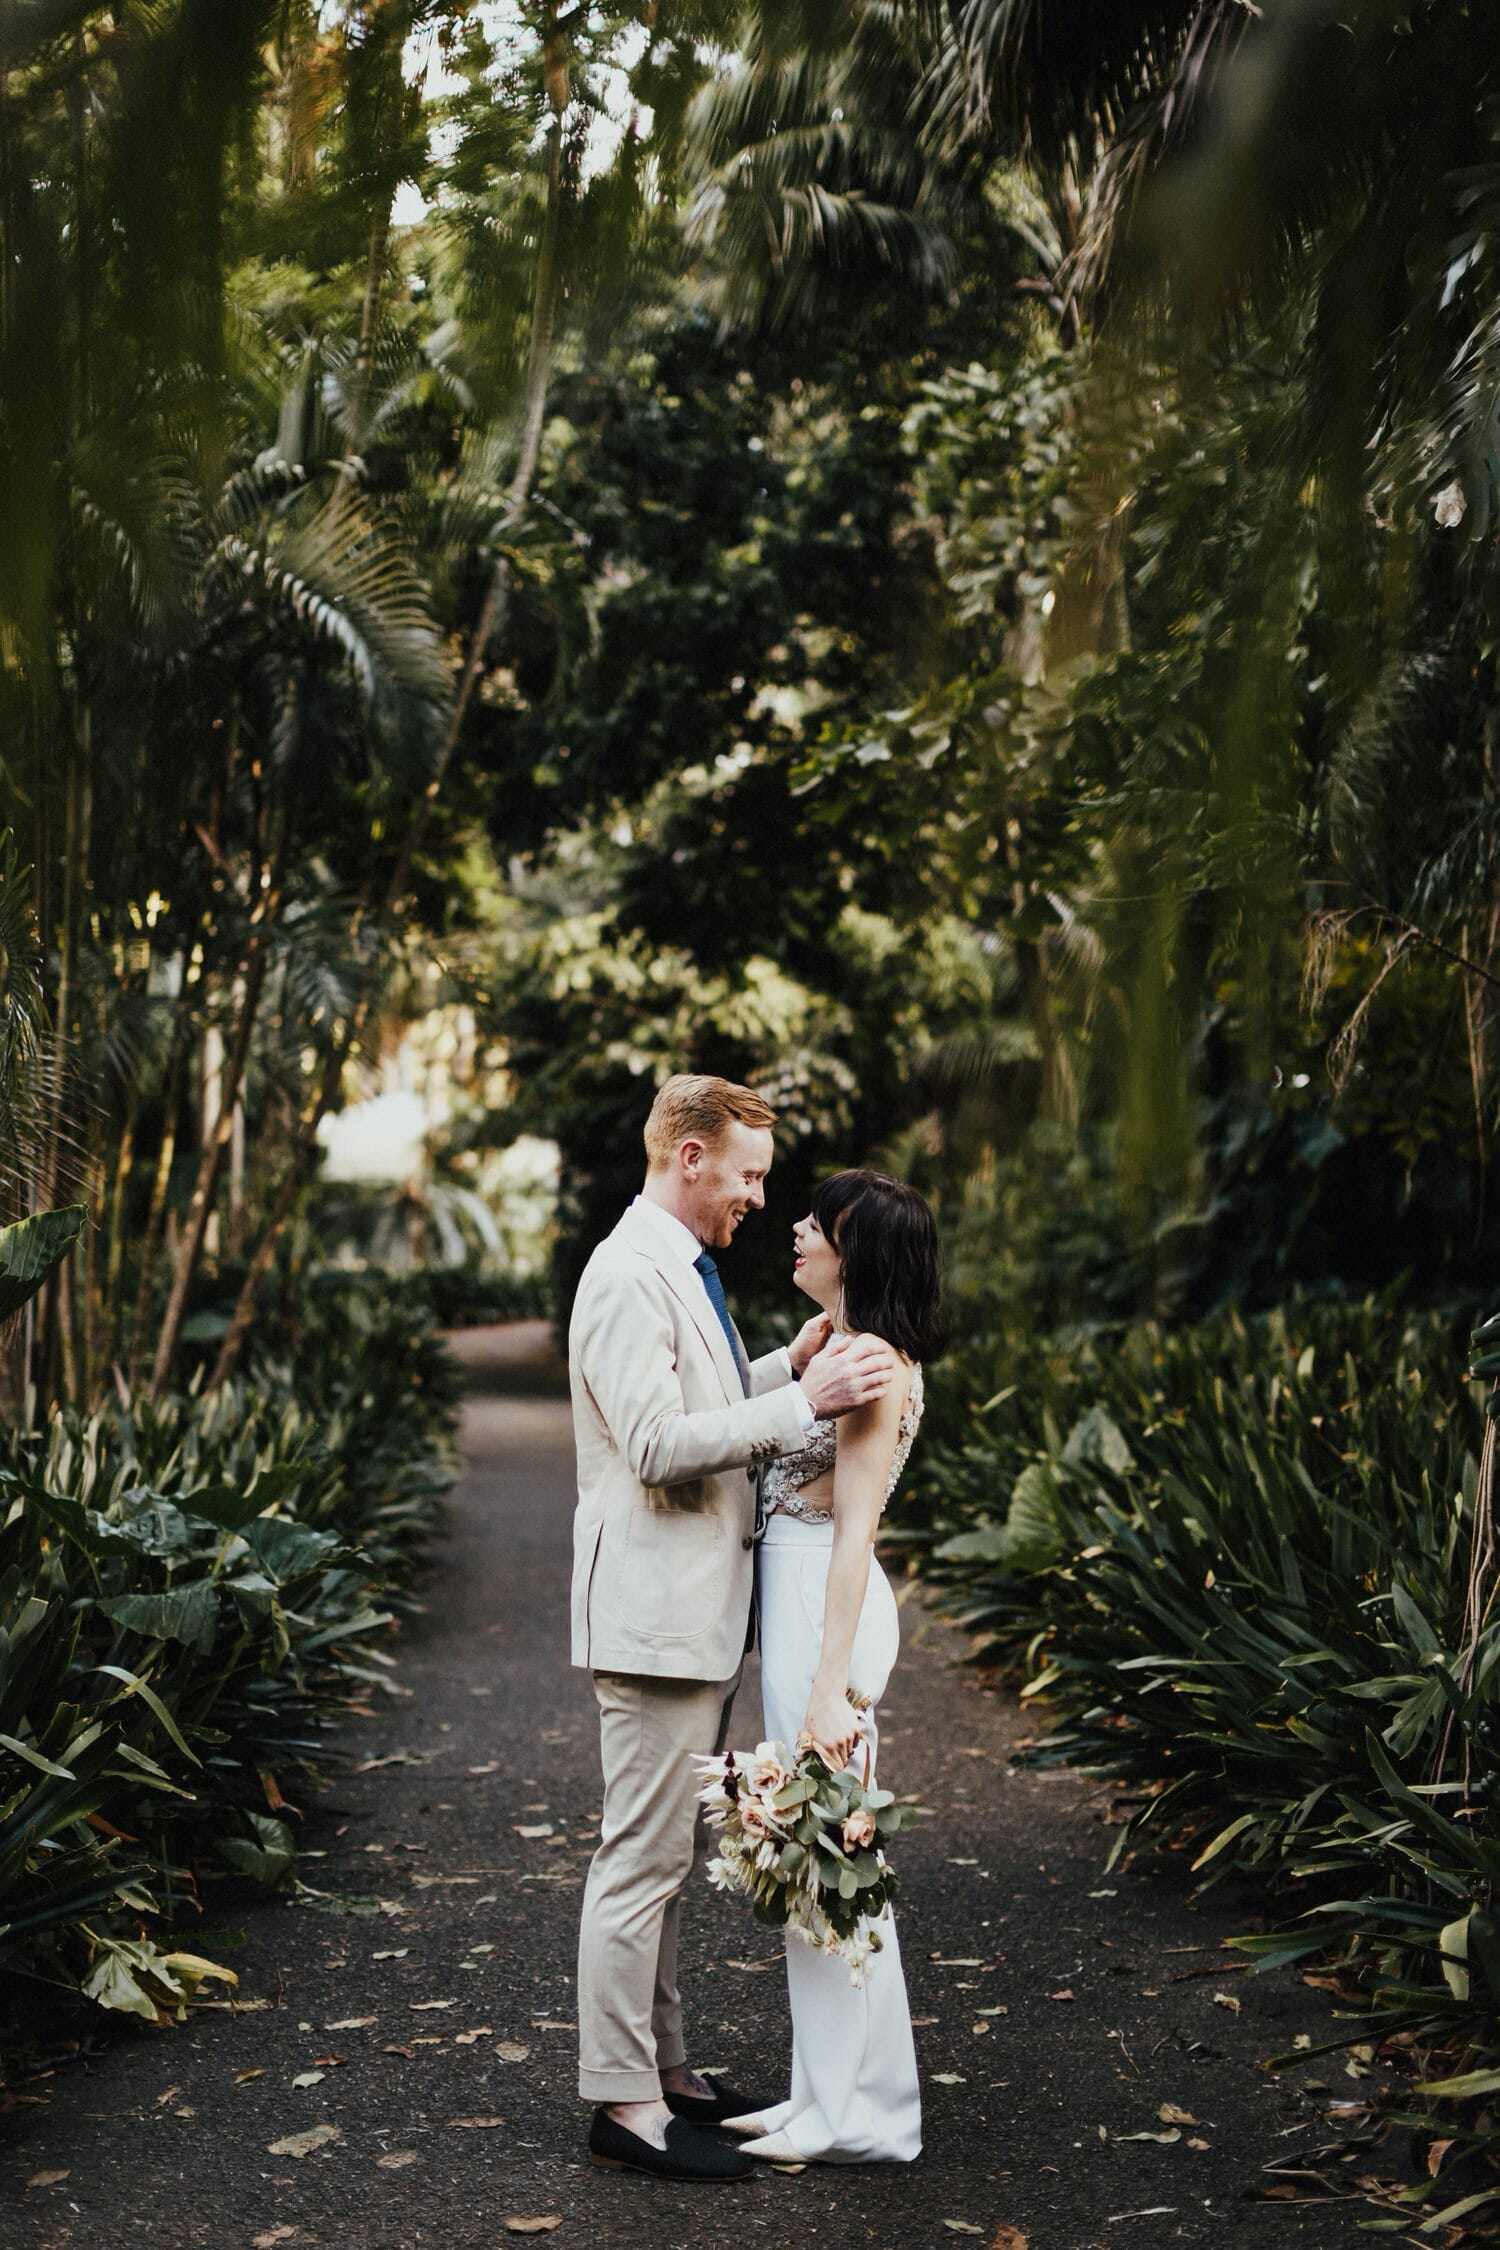 Carly + Bevan Real Wedding, Royal Botanical Gardens Sydney Wedding Photographer